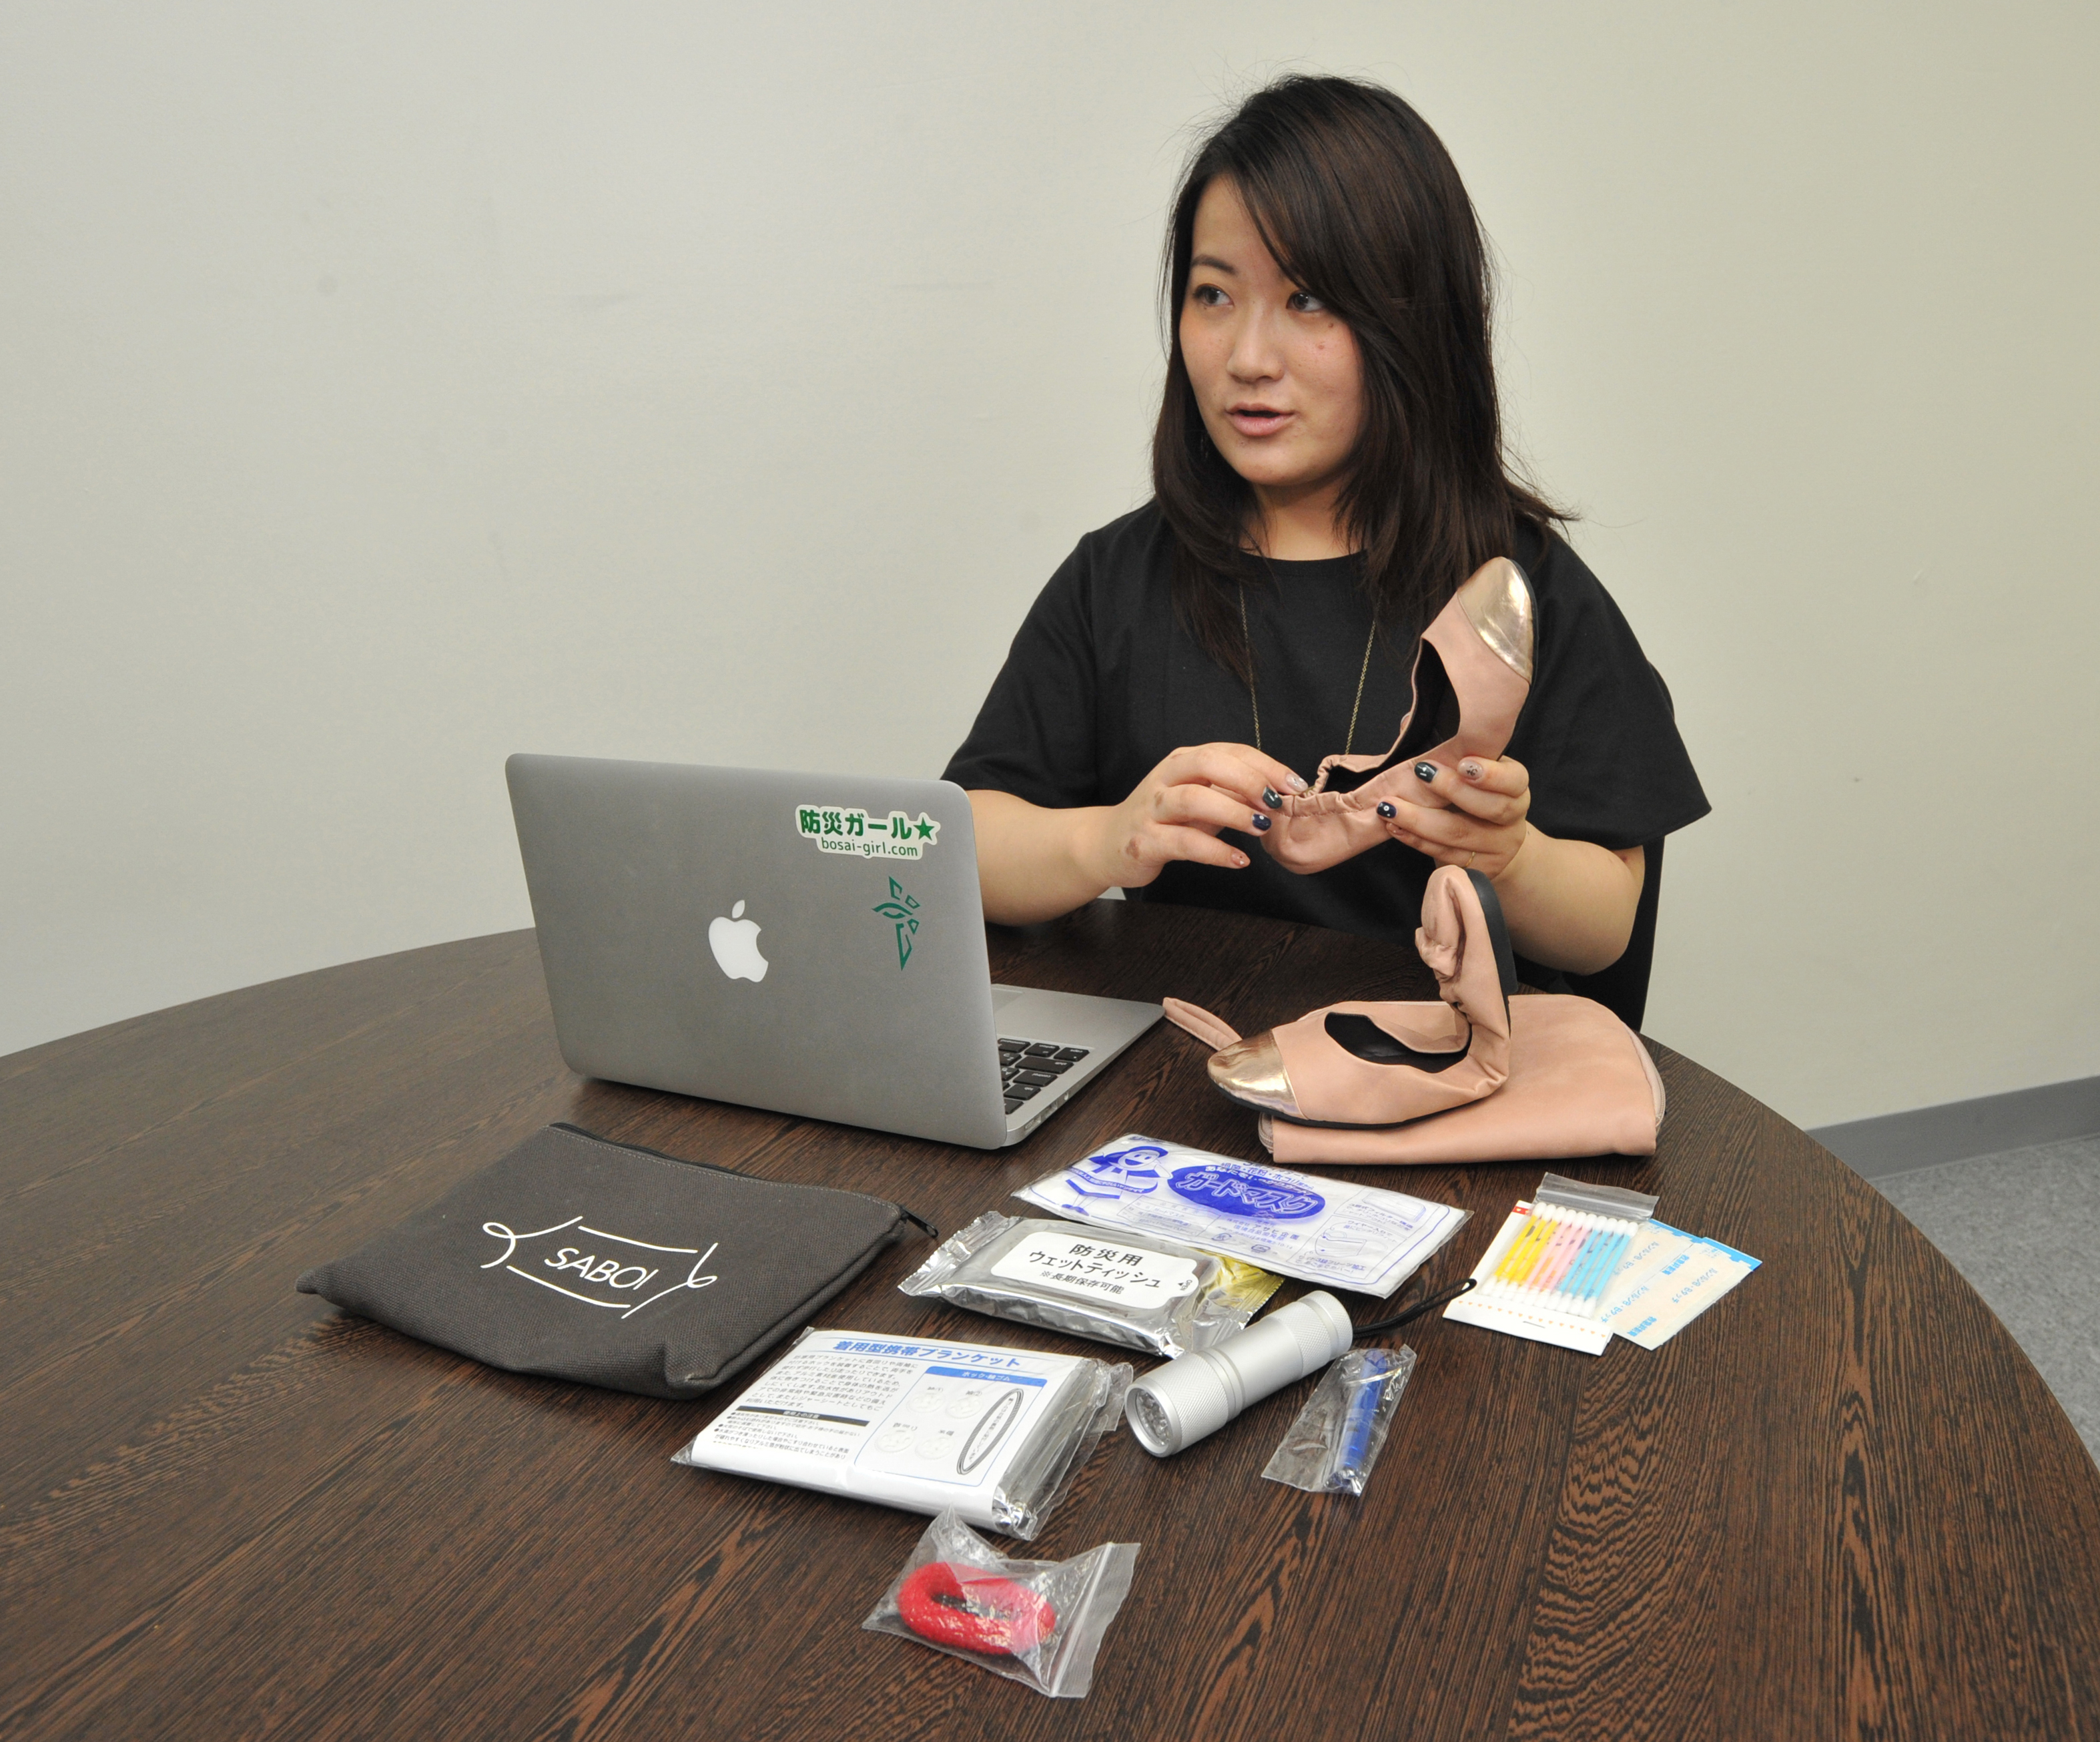 Bosai Girl founder Misaki Tanaka shows disaster-preparedness goods under the SABOI brand during an interview in July at the group's office in Tokyo's Shibuya Ward. | YOSHIAKI MIURA